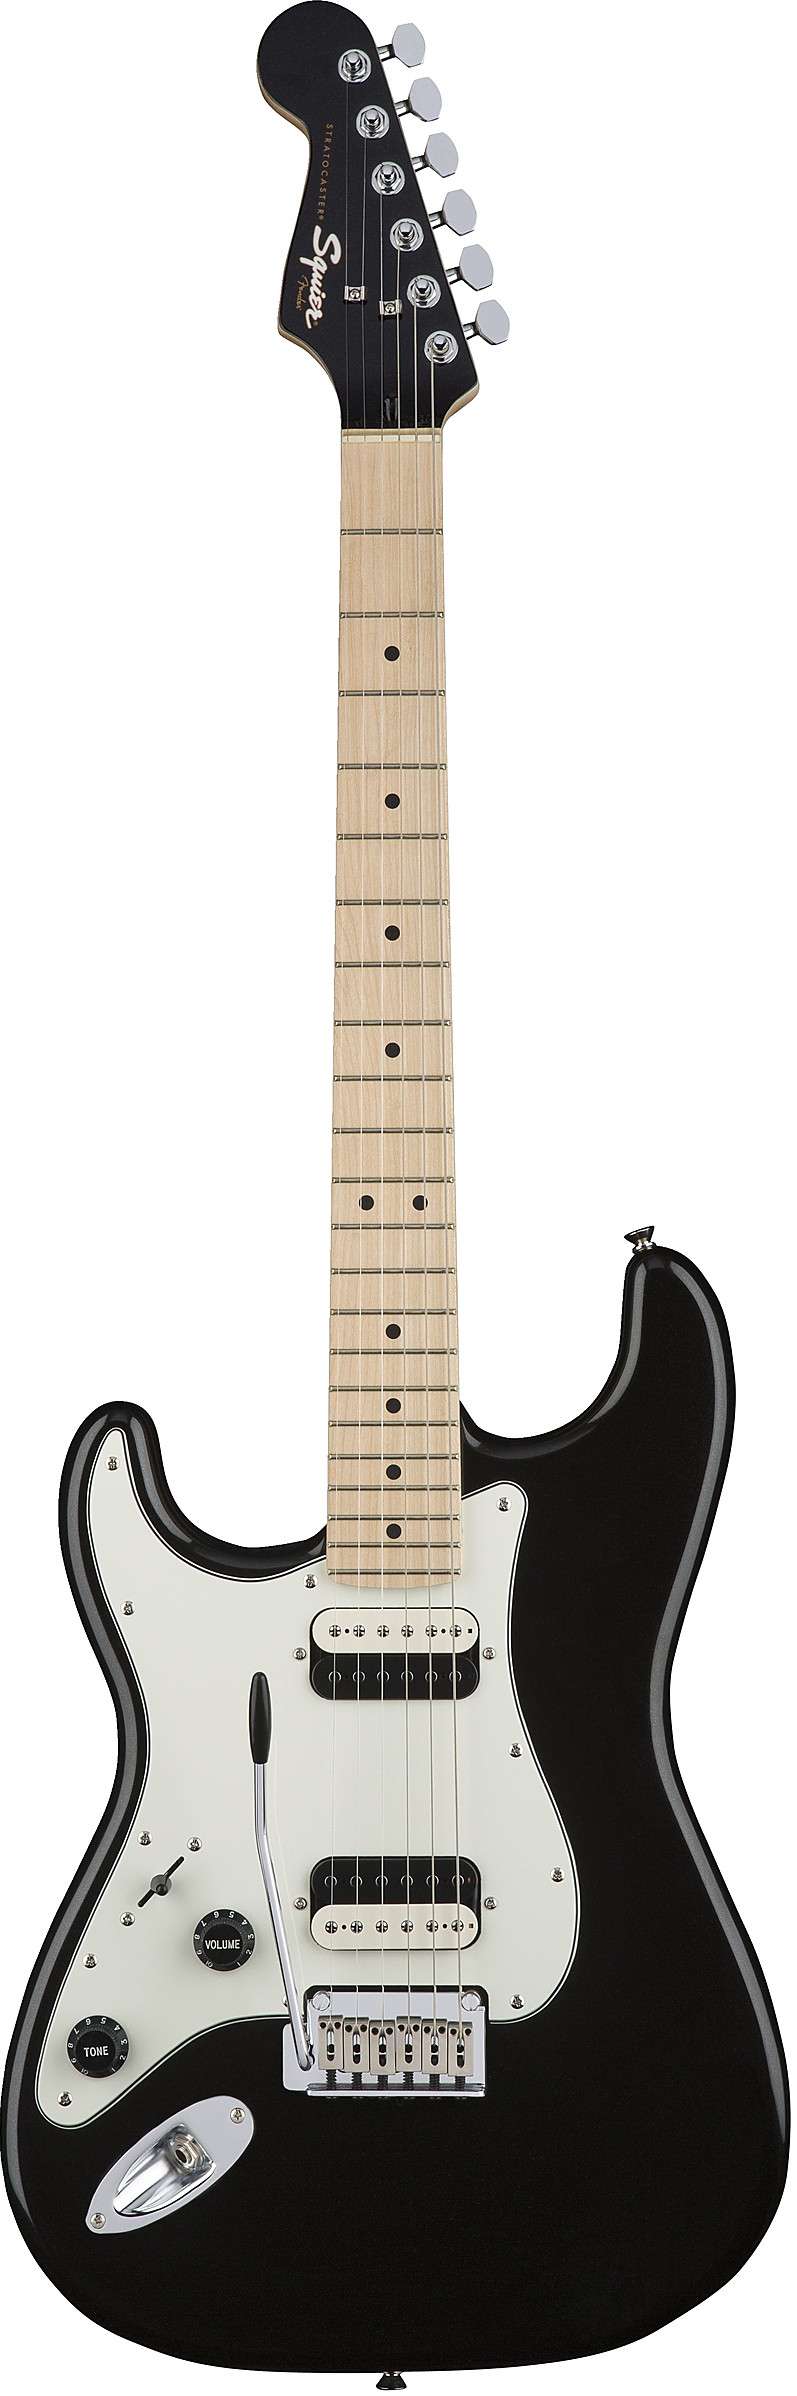 Contemporary Stratocaster HH Left-Handed by Squier by Fender